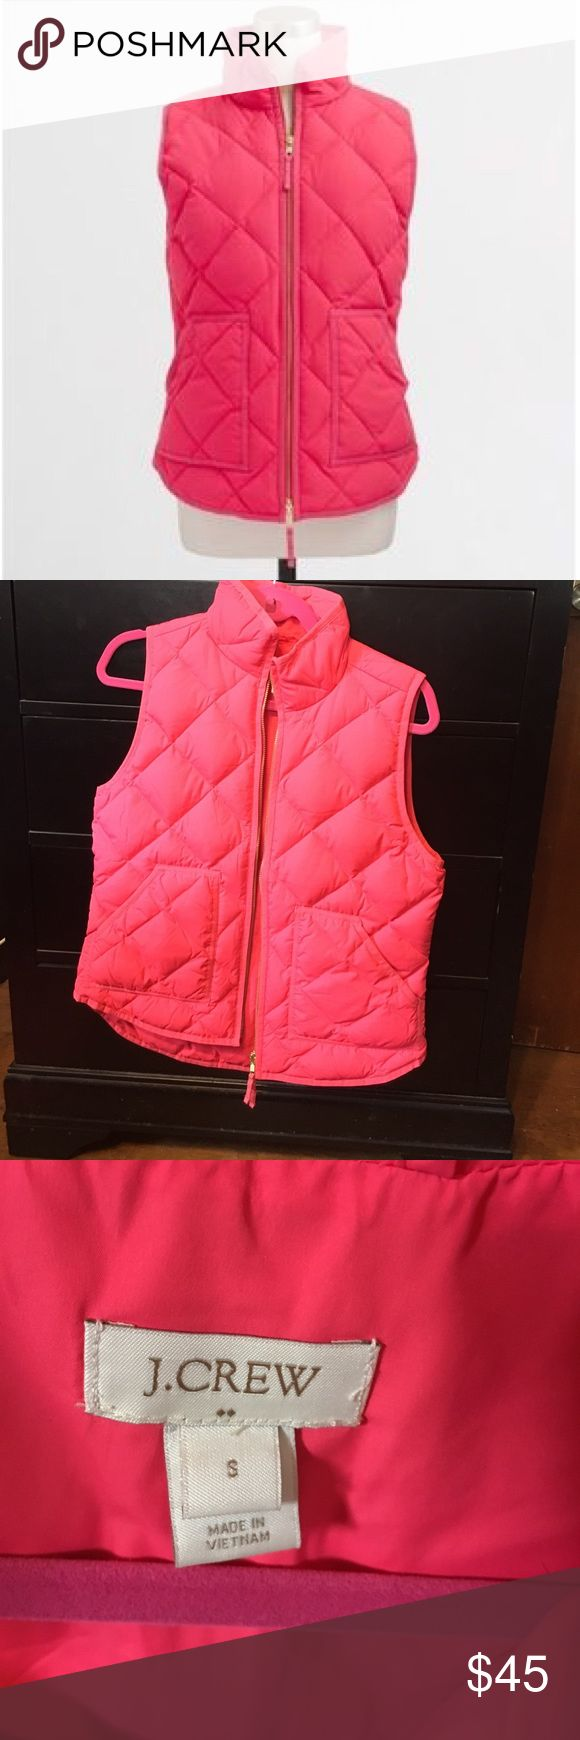 NWOT J. Crew Factory Pink Vest Never worn; only took off the tags and tried it on J. Crew Jackets & Coats Vests